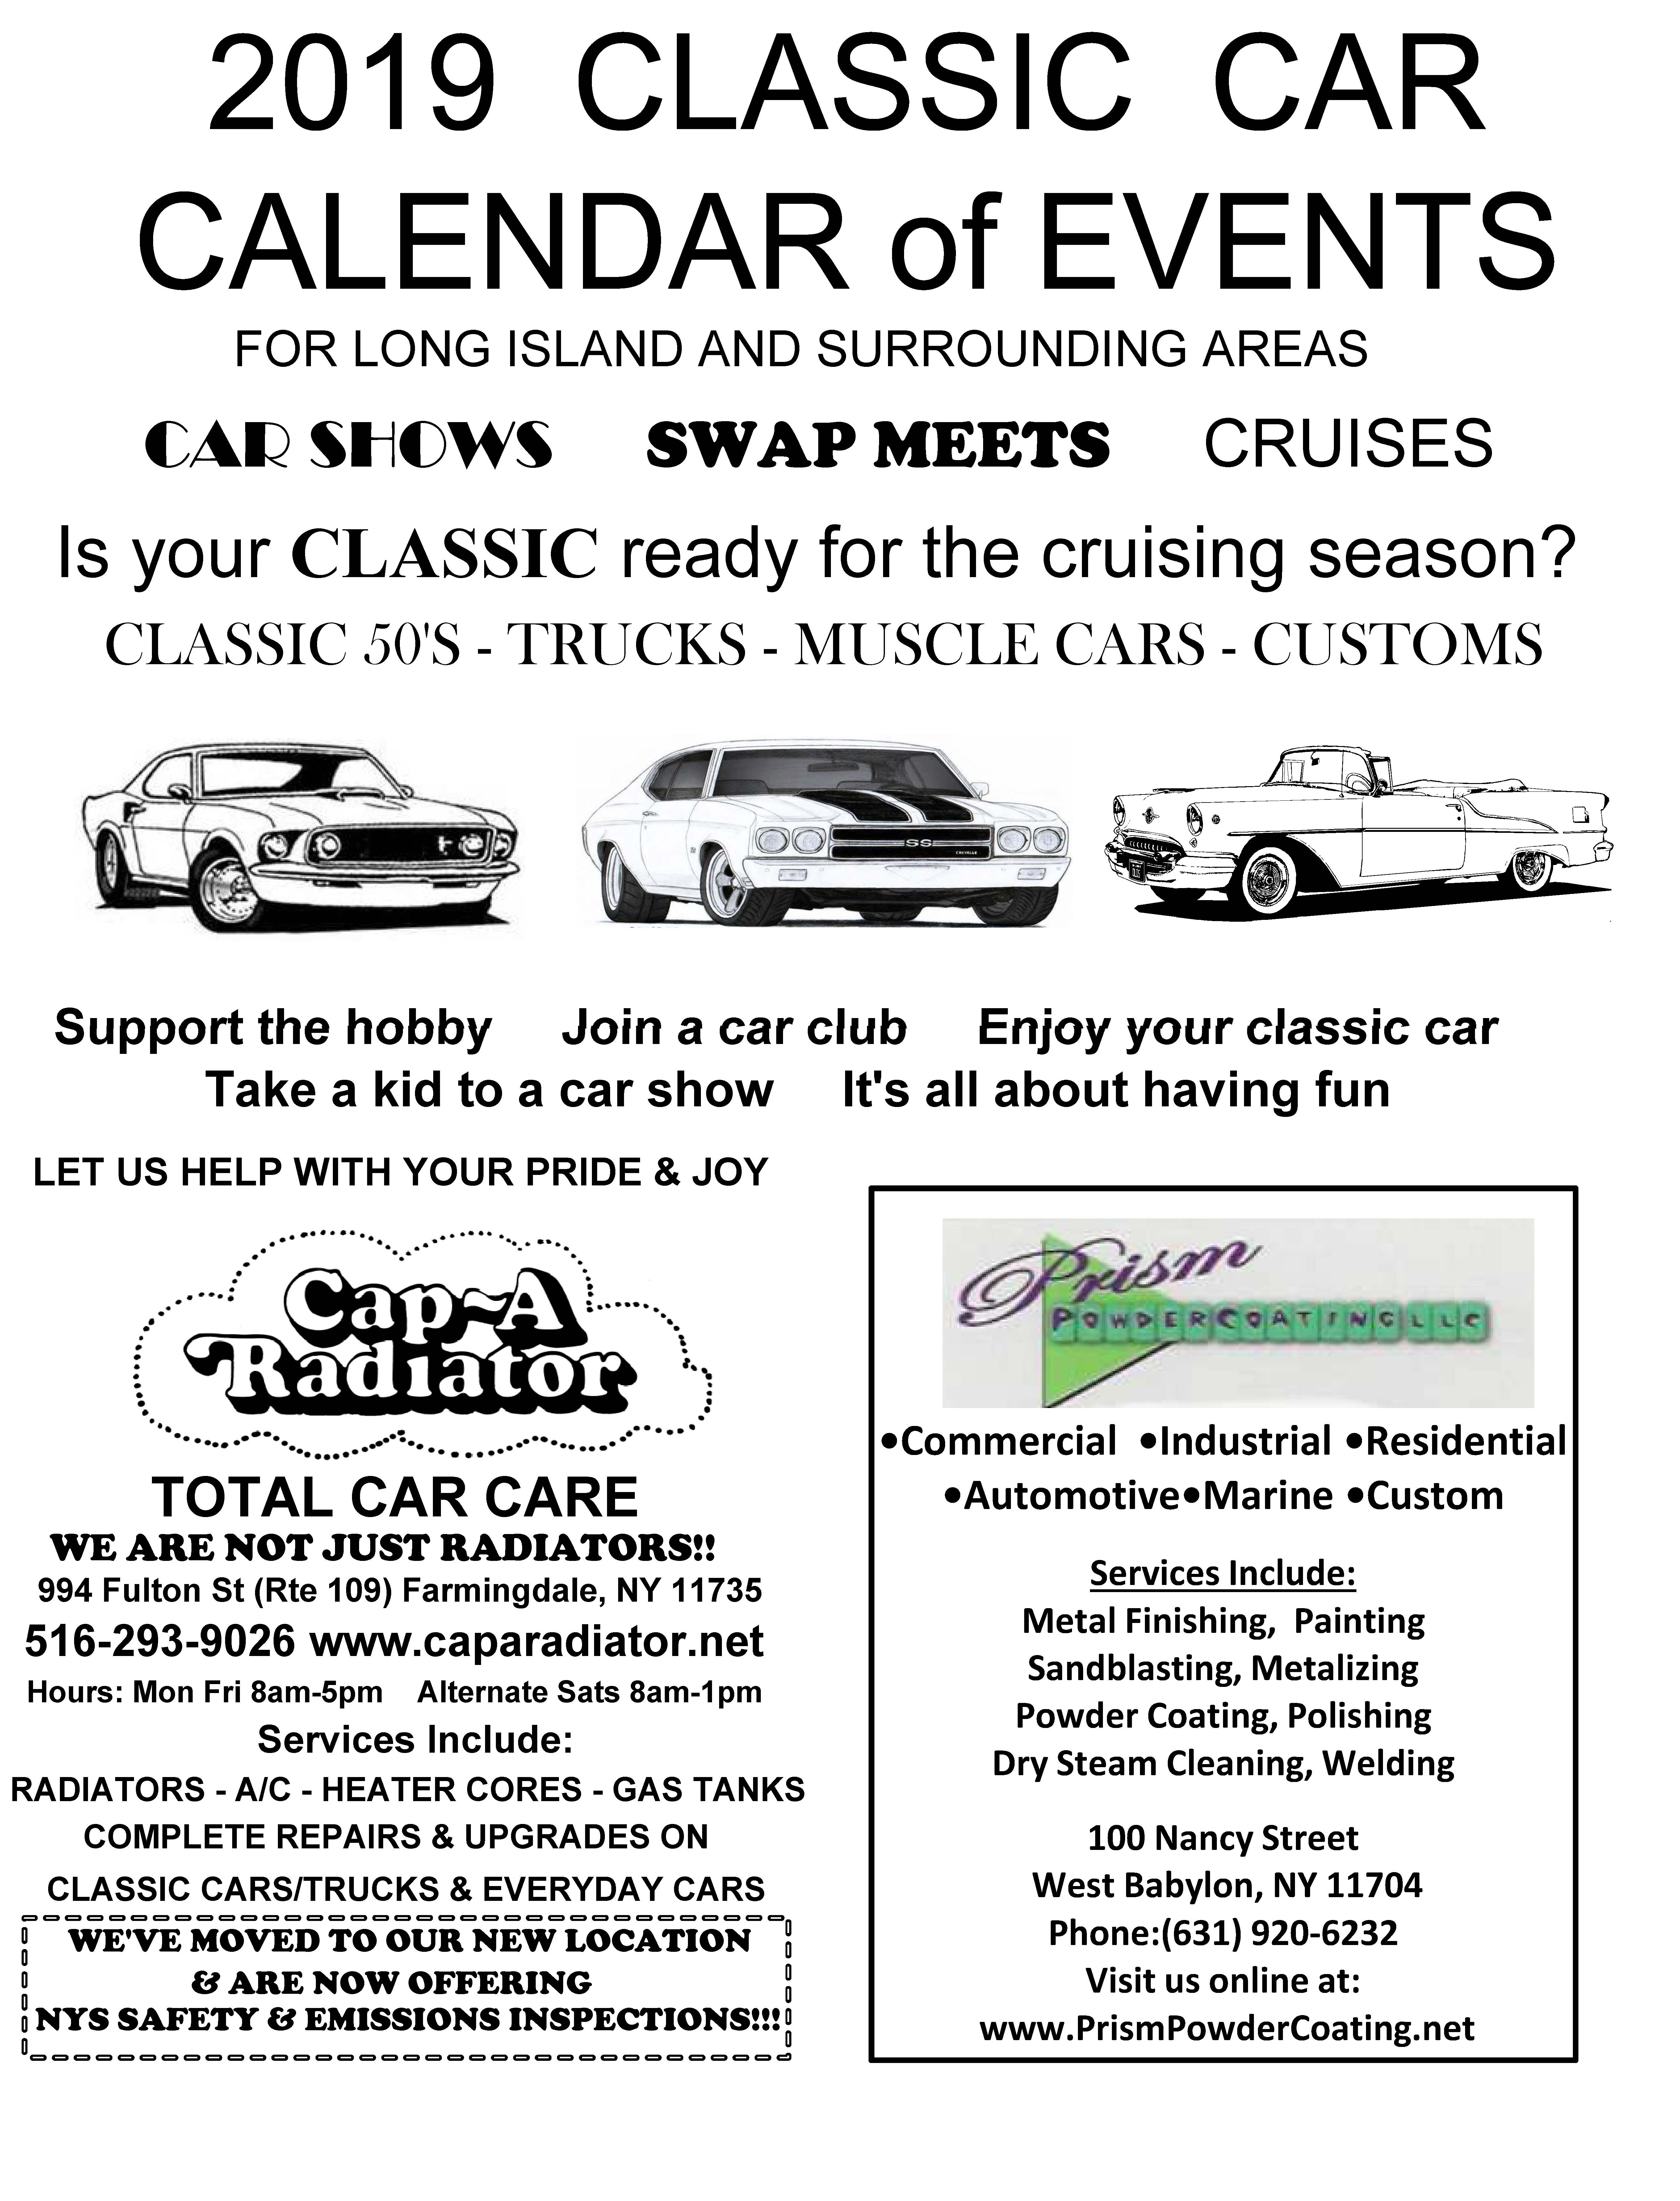 2019 LI Classic Car Calendar of Events Part 1 Page 1